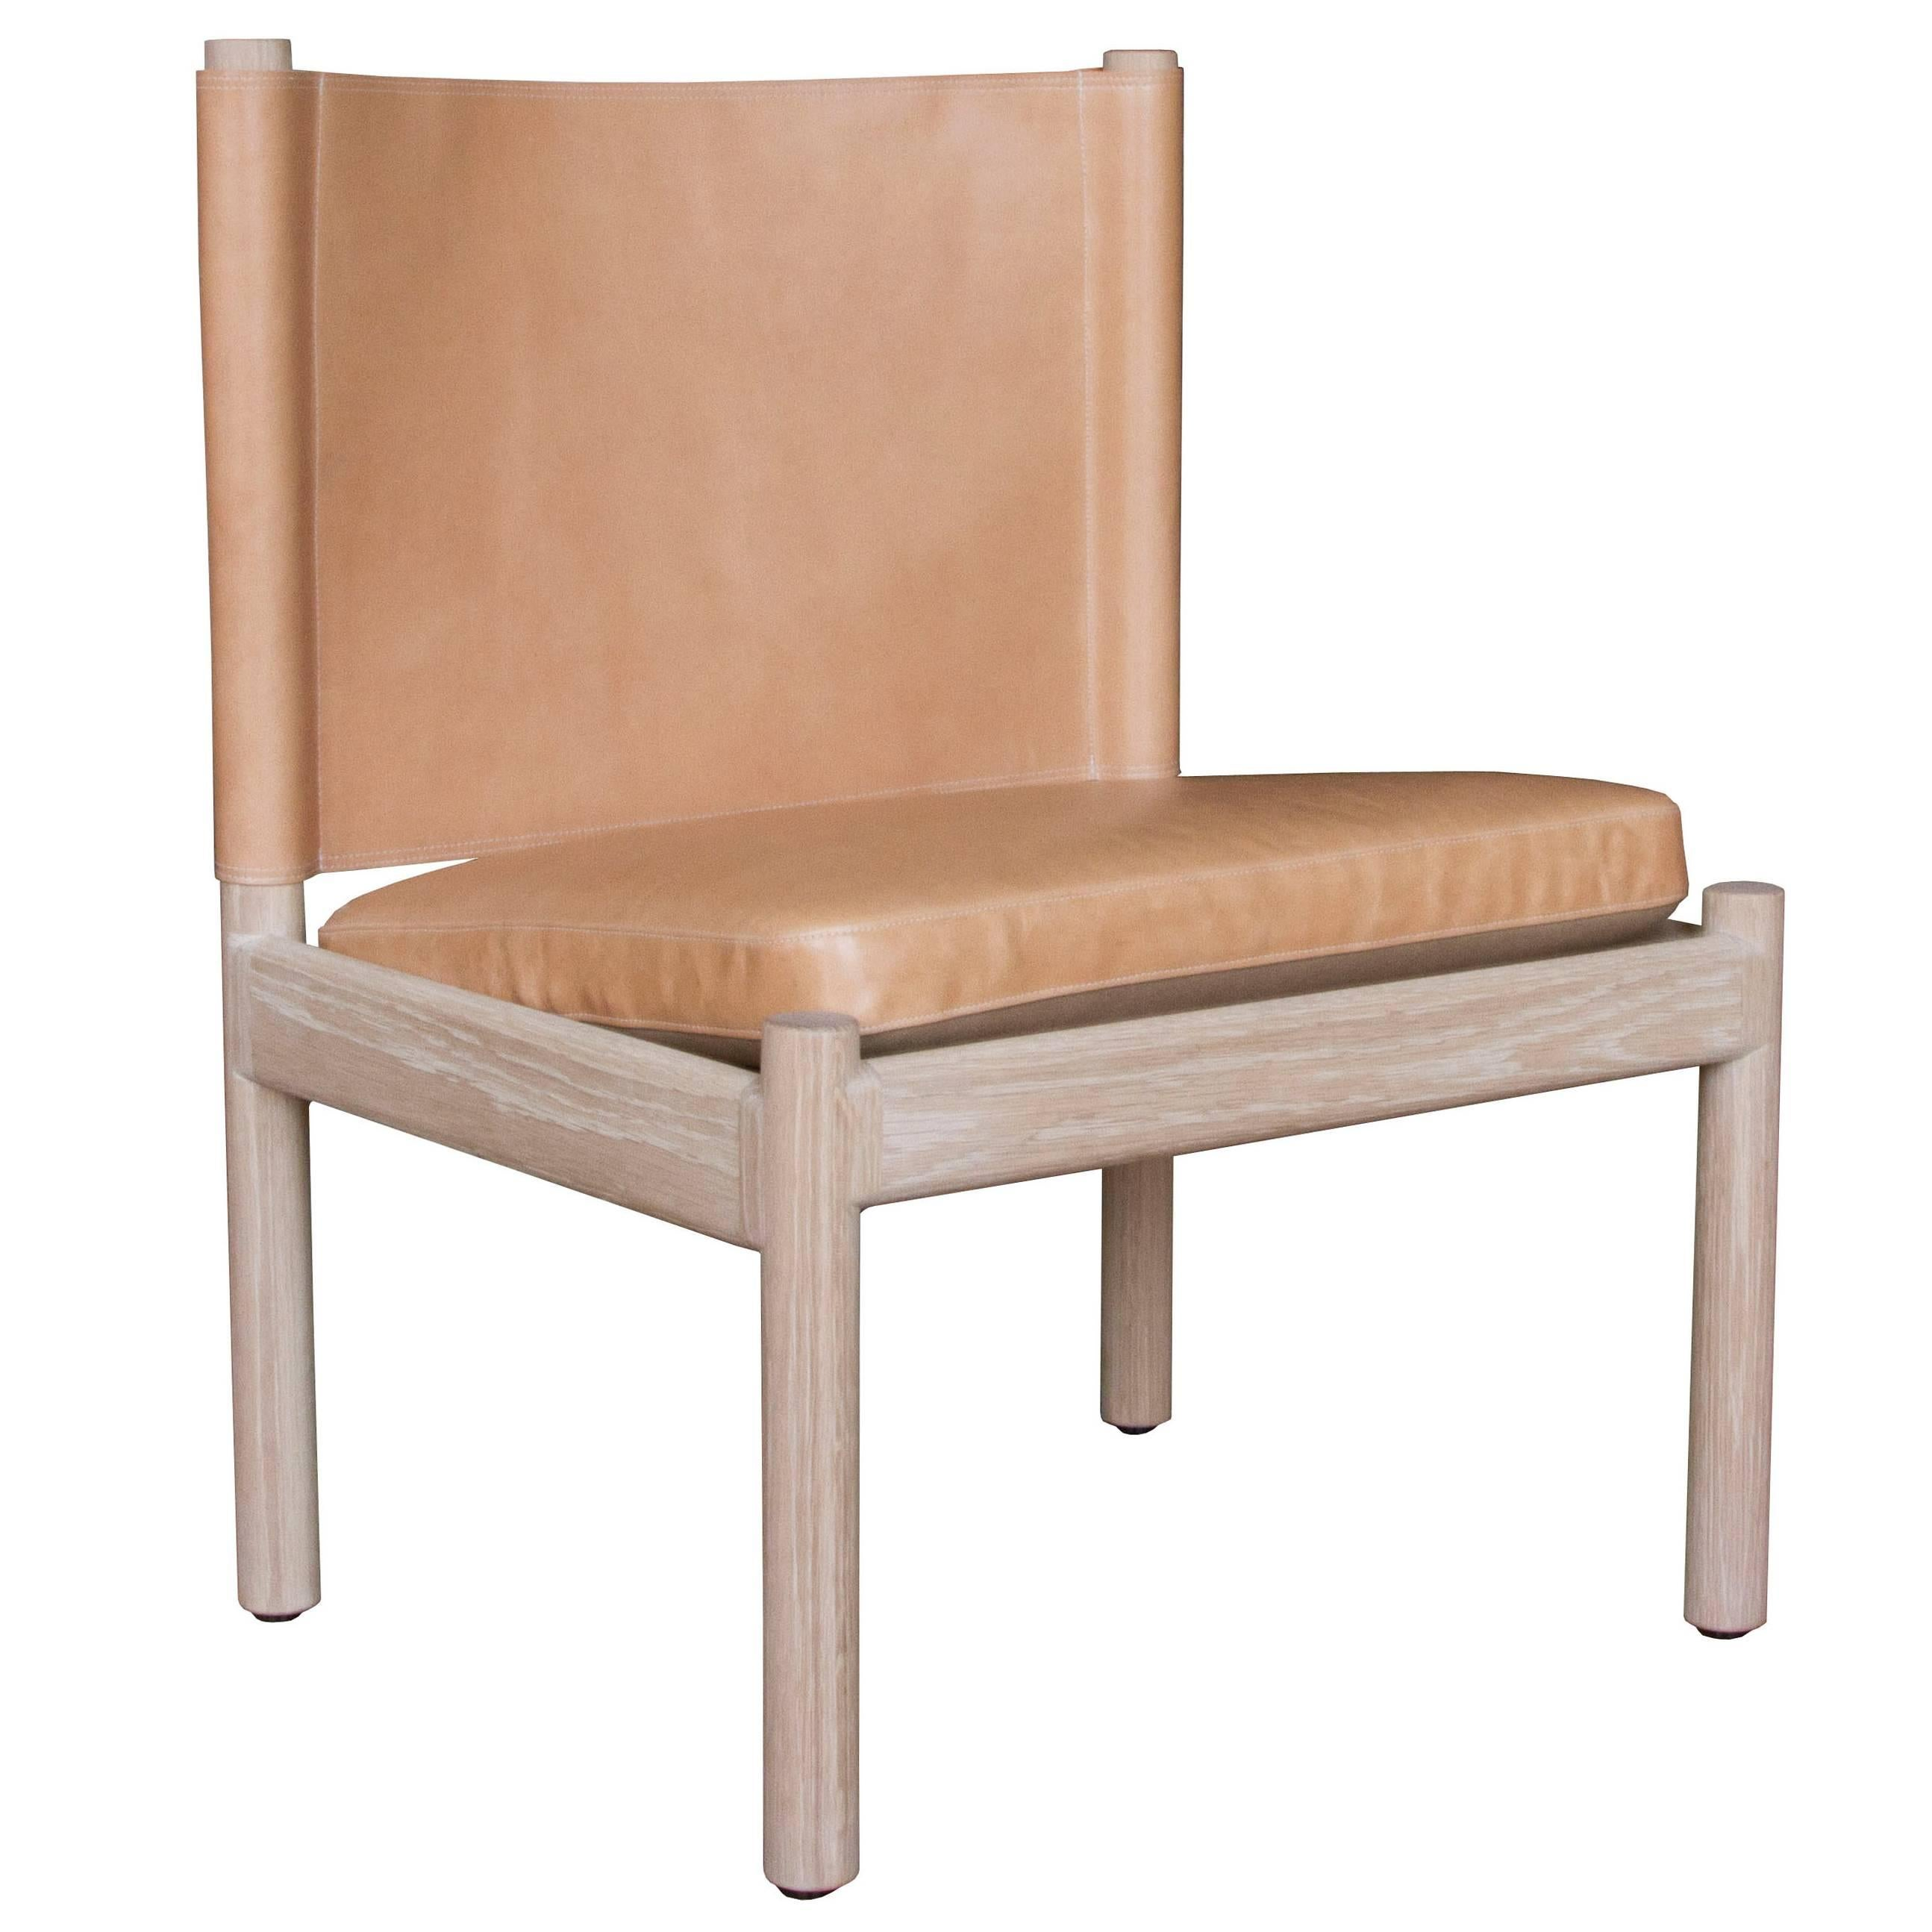 Reed Lounge Chair in Oak and Leather - handcrafted by Richard Wrightman Design